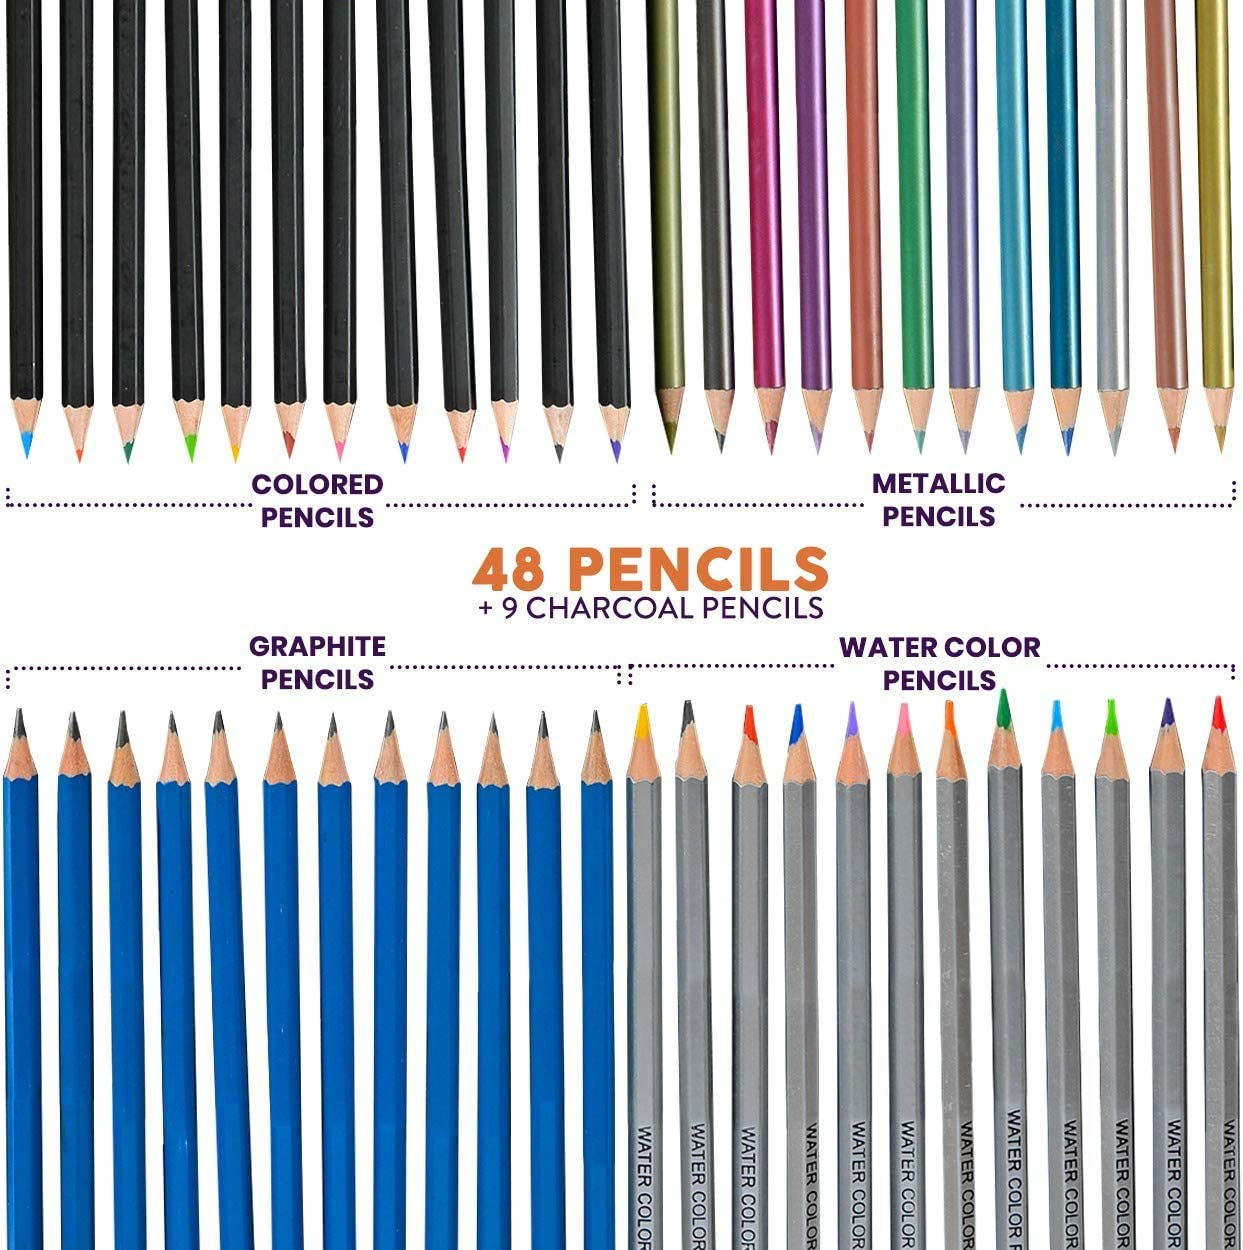 Metallic Charcoal Glokers 72-Piece Arts Supplies and Drawing Kit Set Eraser /& More Complete Set of Art Pencils: Graphite Stumps Watercolor Colored Also Includes 9x12 Sketch Book Sharpener